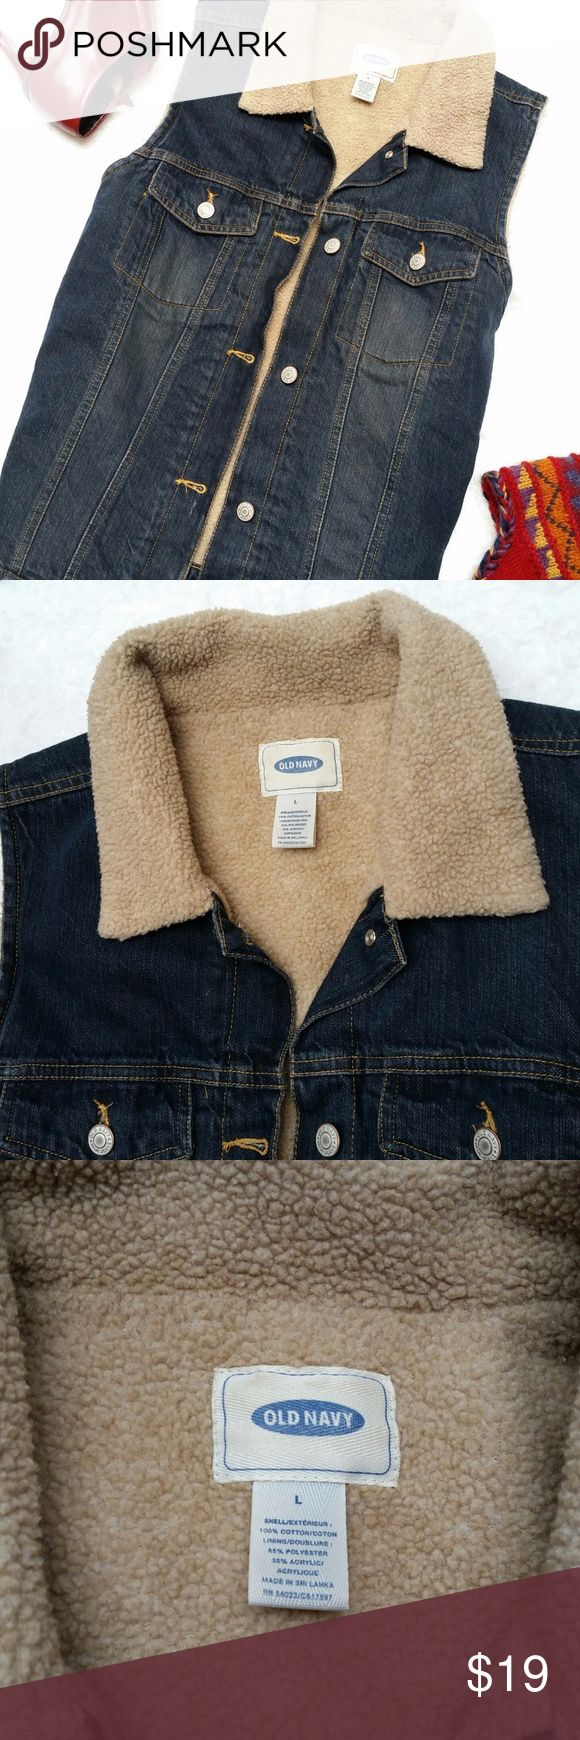 Old Navy Sherpa Lined Denim Vest Large Just in time for fall, this Old Navy sherpa lined denim vest is ready to keep you cozy. Size Large. 22 inches across the bust. 24 inches long shoulder to hemline. Old Navy Jackets & Coats Vests